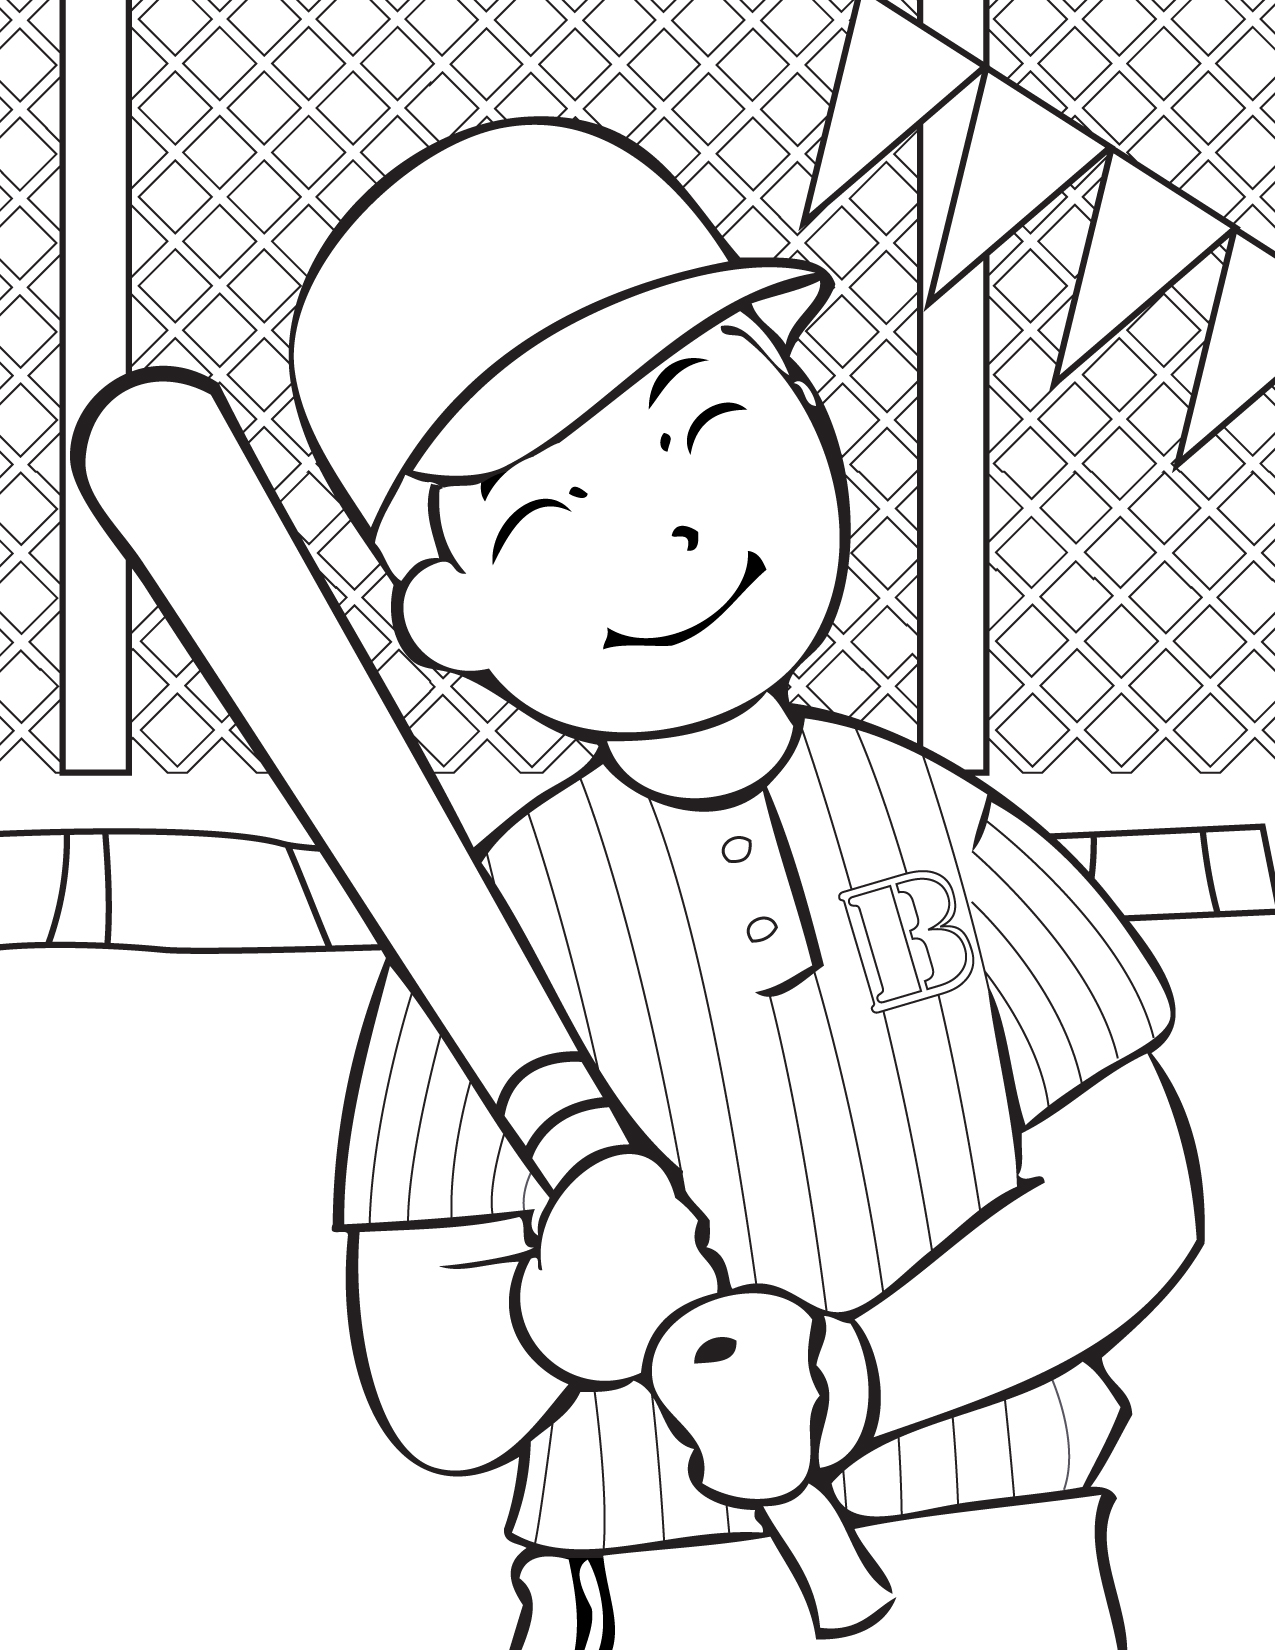 baseball coloring pages for kids free printable baseball coloring pages for kids best